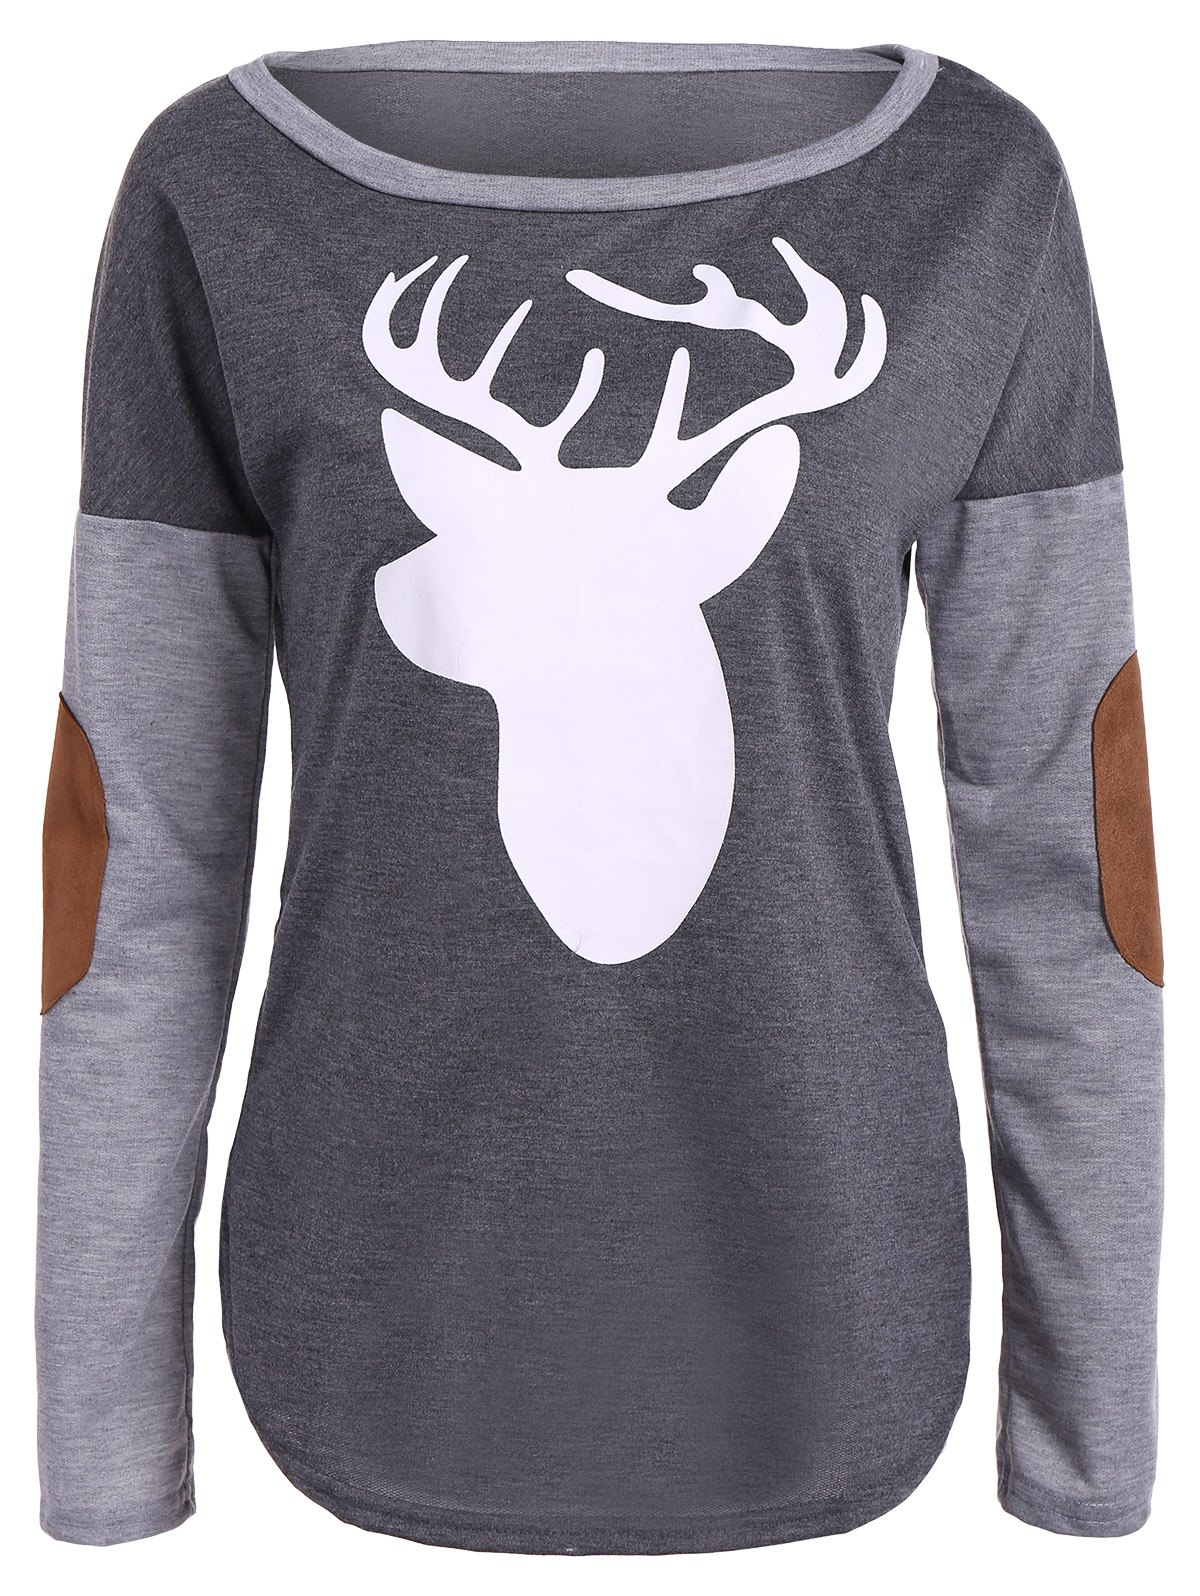 Christmas Elbow Patch Reindeer Print TeeWOMEN<br><br>Size: XL; Color: GRAY; Material: Polyester; Sleeve Length: Full; Collar: Scoop Neck; Style: Casual; Pattern Type: Animal; Season: Fall,Spring; Weight: 0.420kg; Package Contents: 1 x Tee;